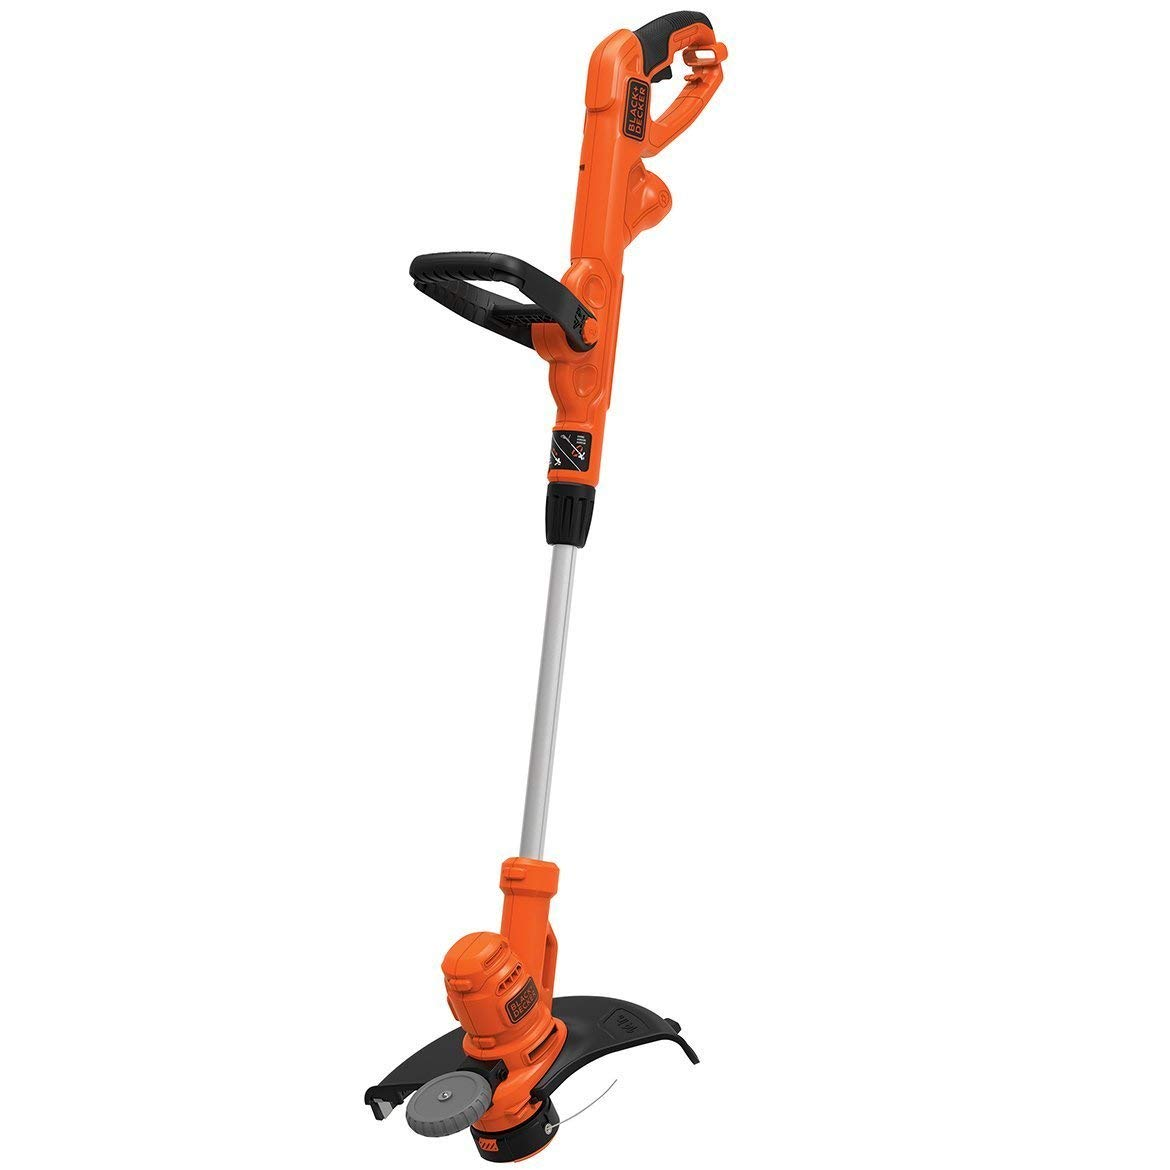 BLACK+DECKER BESTA510 6.5 Amp 14 in. AFS Electric String Trimmer/Edger (Renewed)